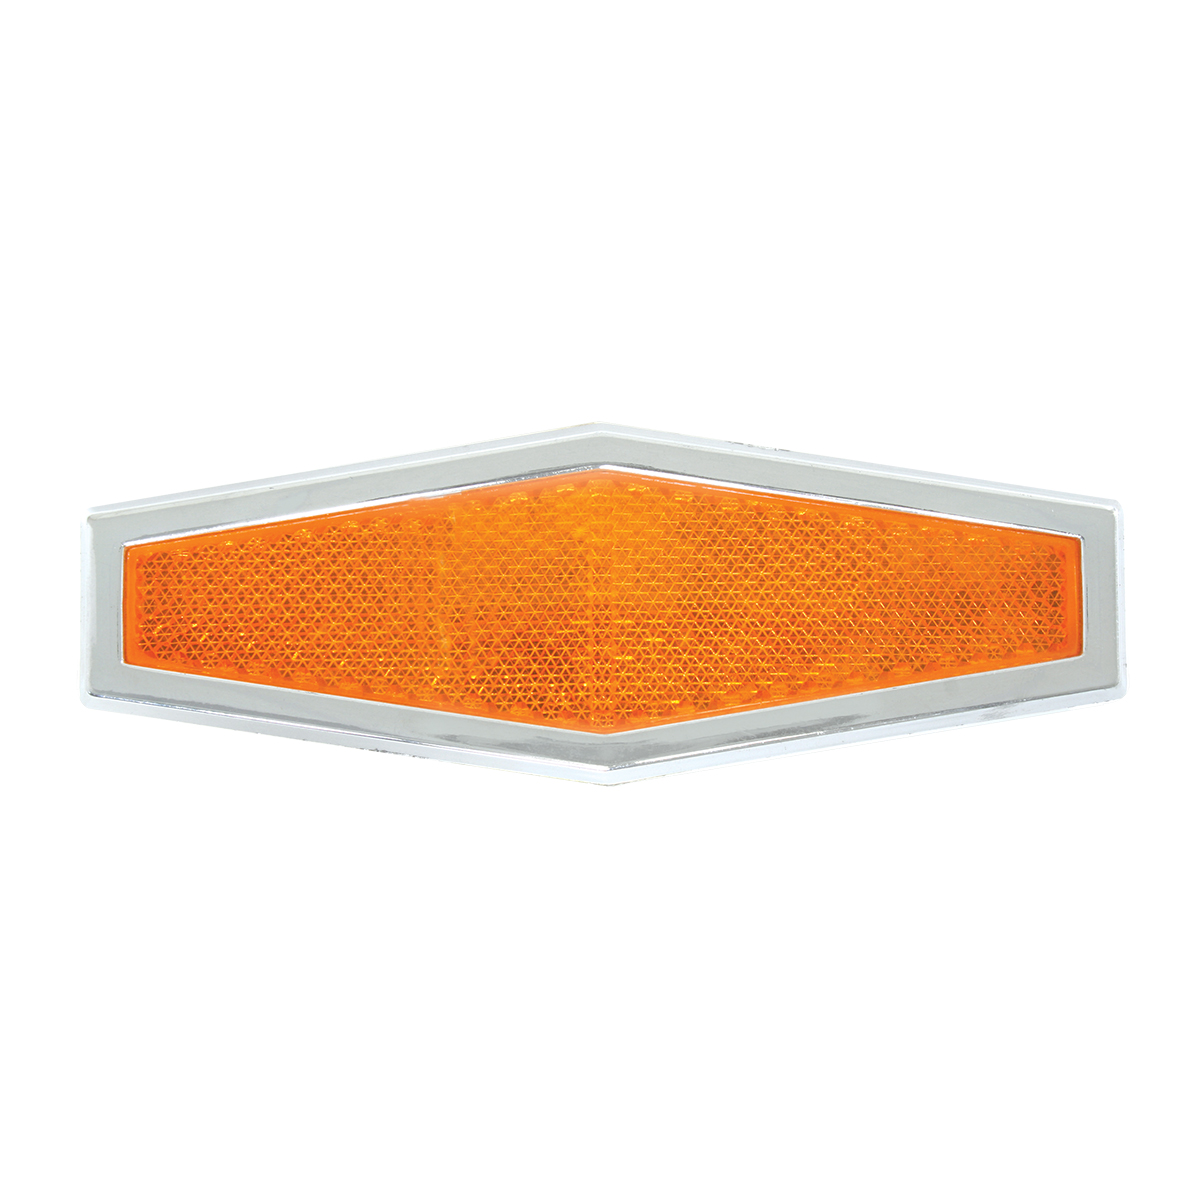 80861 Amber Diamond Shape Stick-On Reflector w/ Chrome Trim